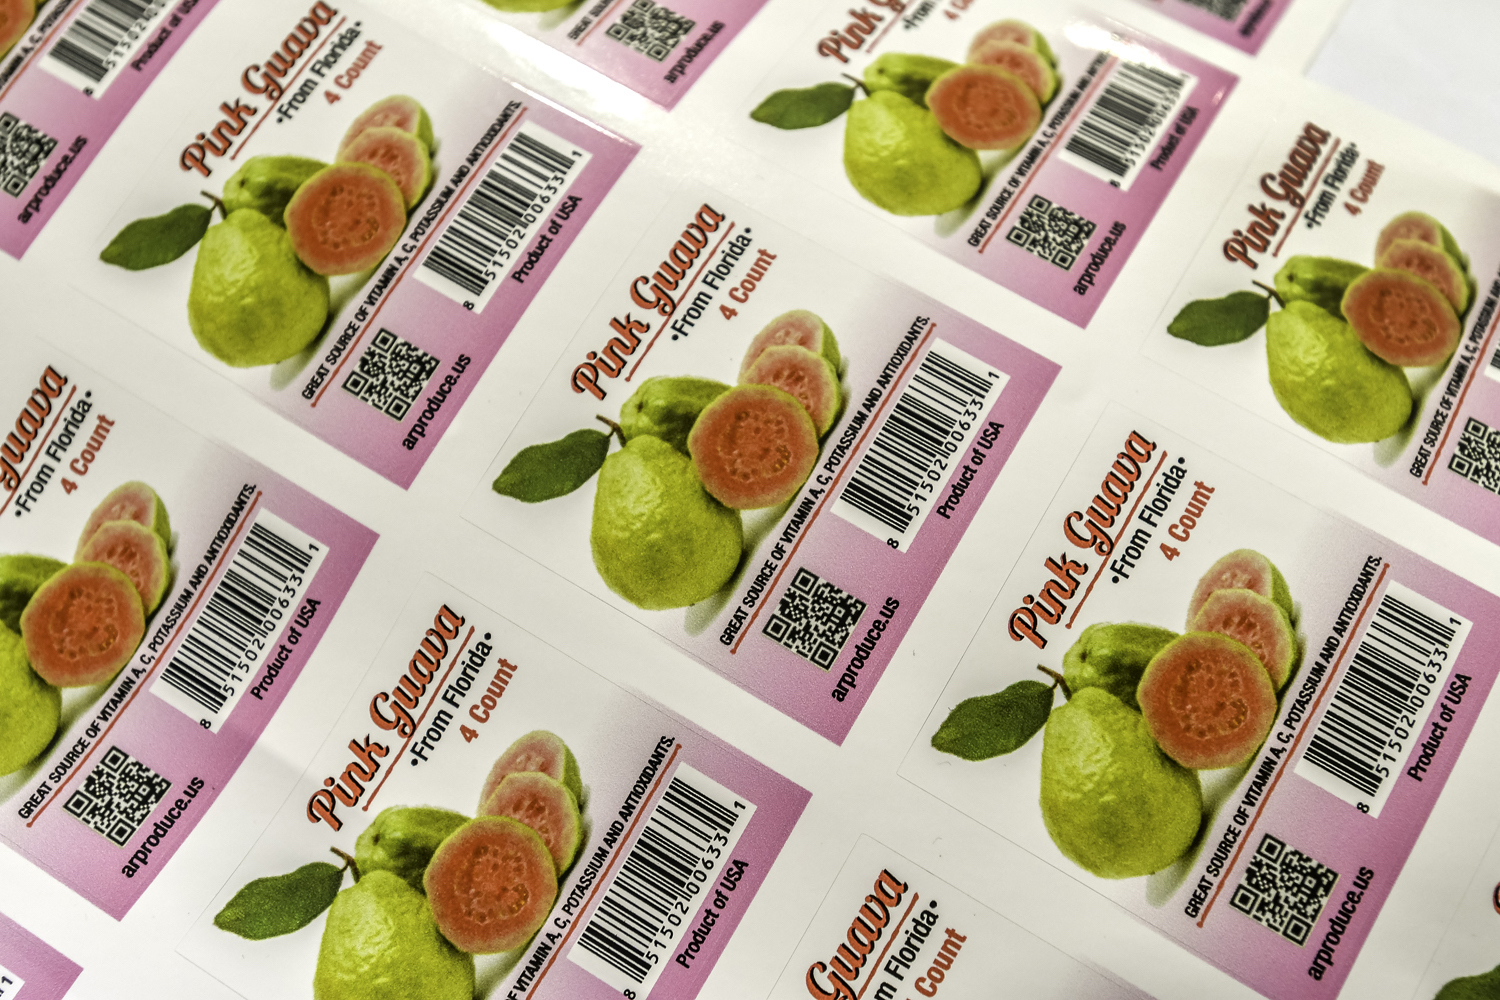 A.R. Produce ships guavas around the country including to Walmart stores around Florida. Mr. Martinez said that he has seen a sharp increase in demand for exotic fruits since opening his farm in 2001. He credits millennials for driving a lot of the more recent interest.   PHOTOGRAPHY BY JIM RASSOL